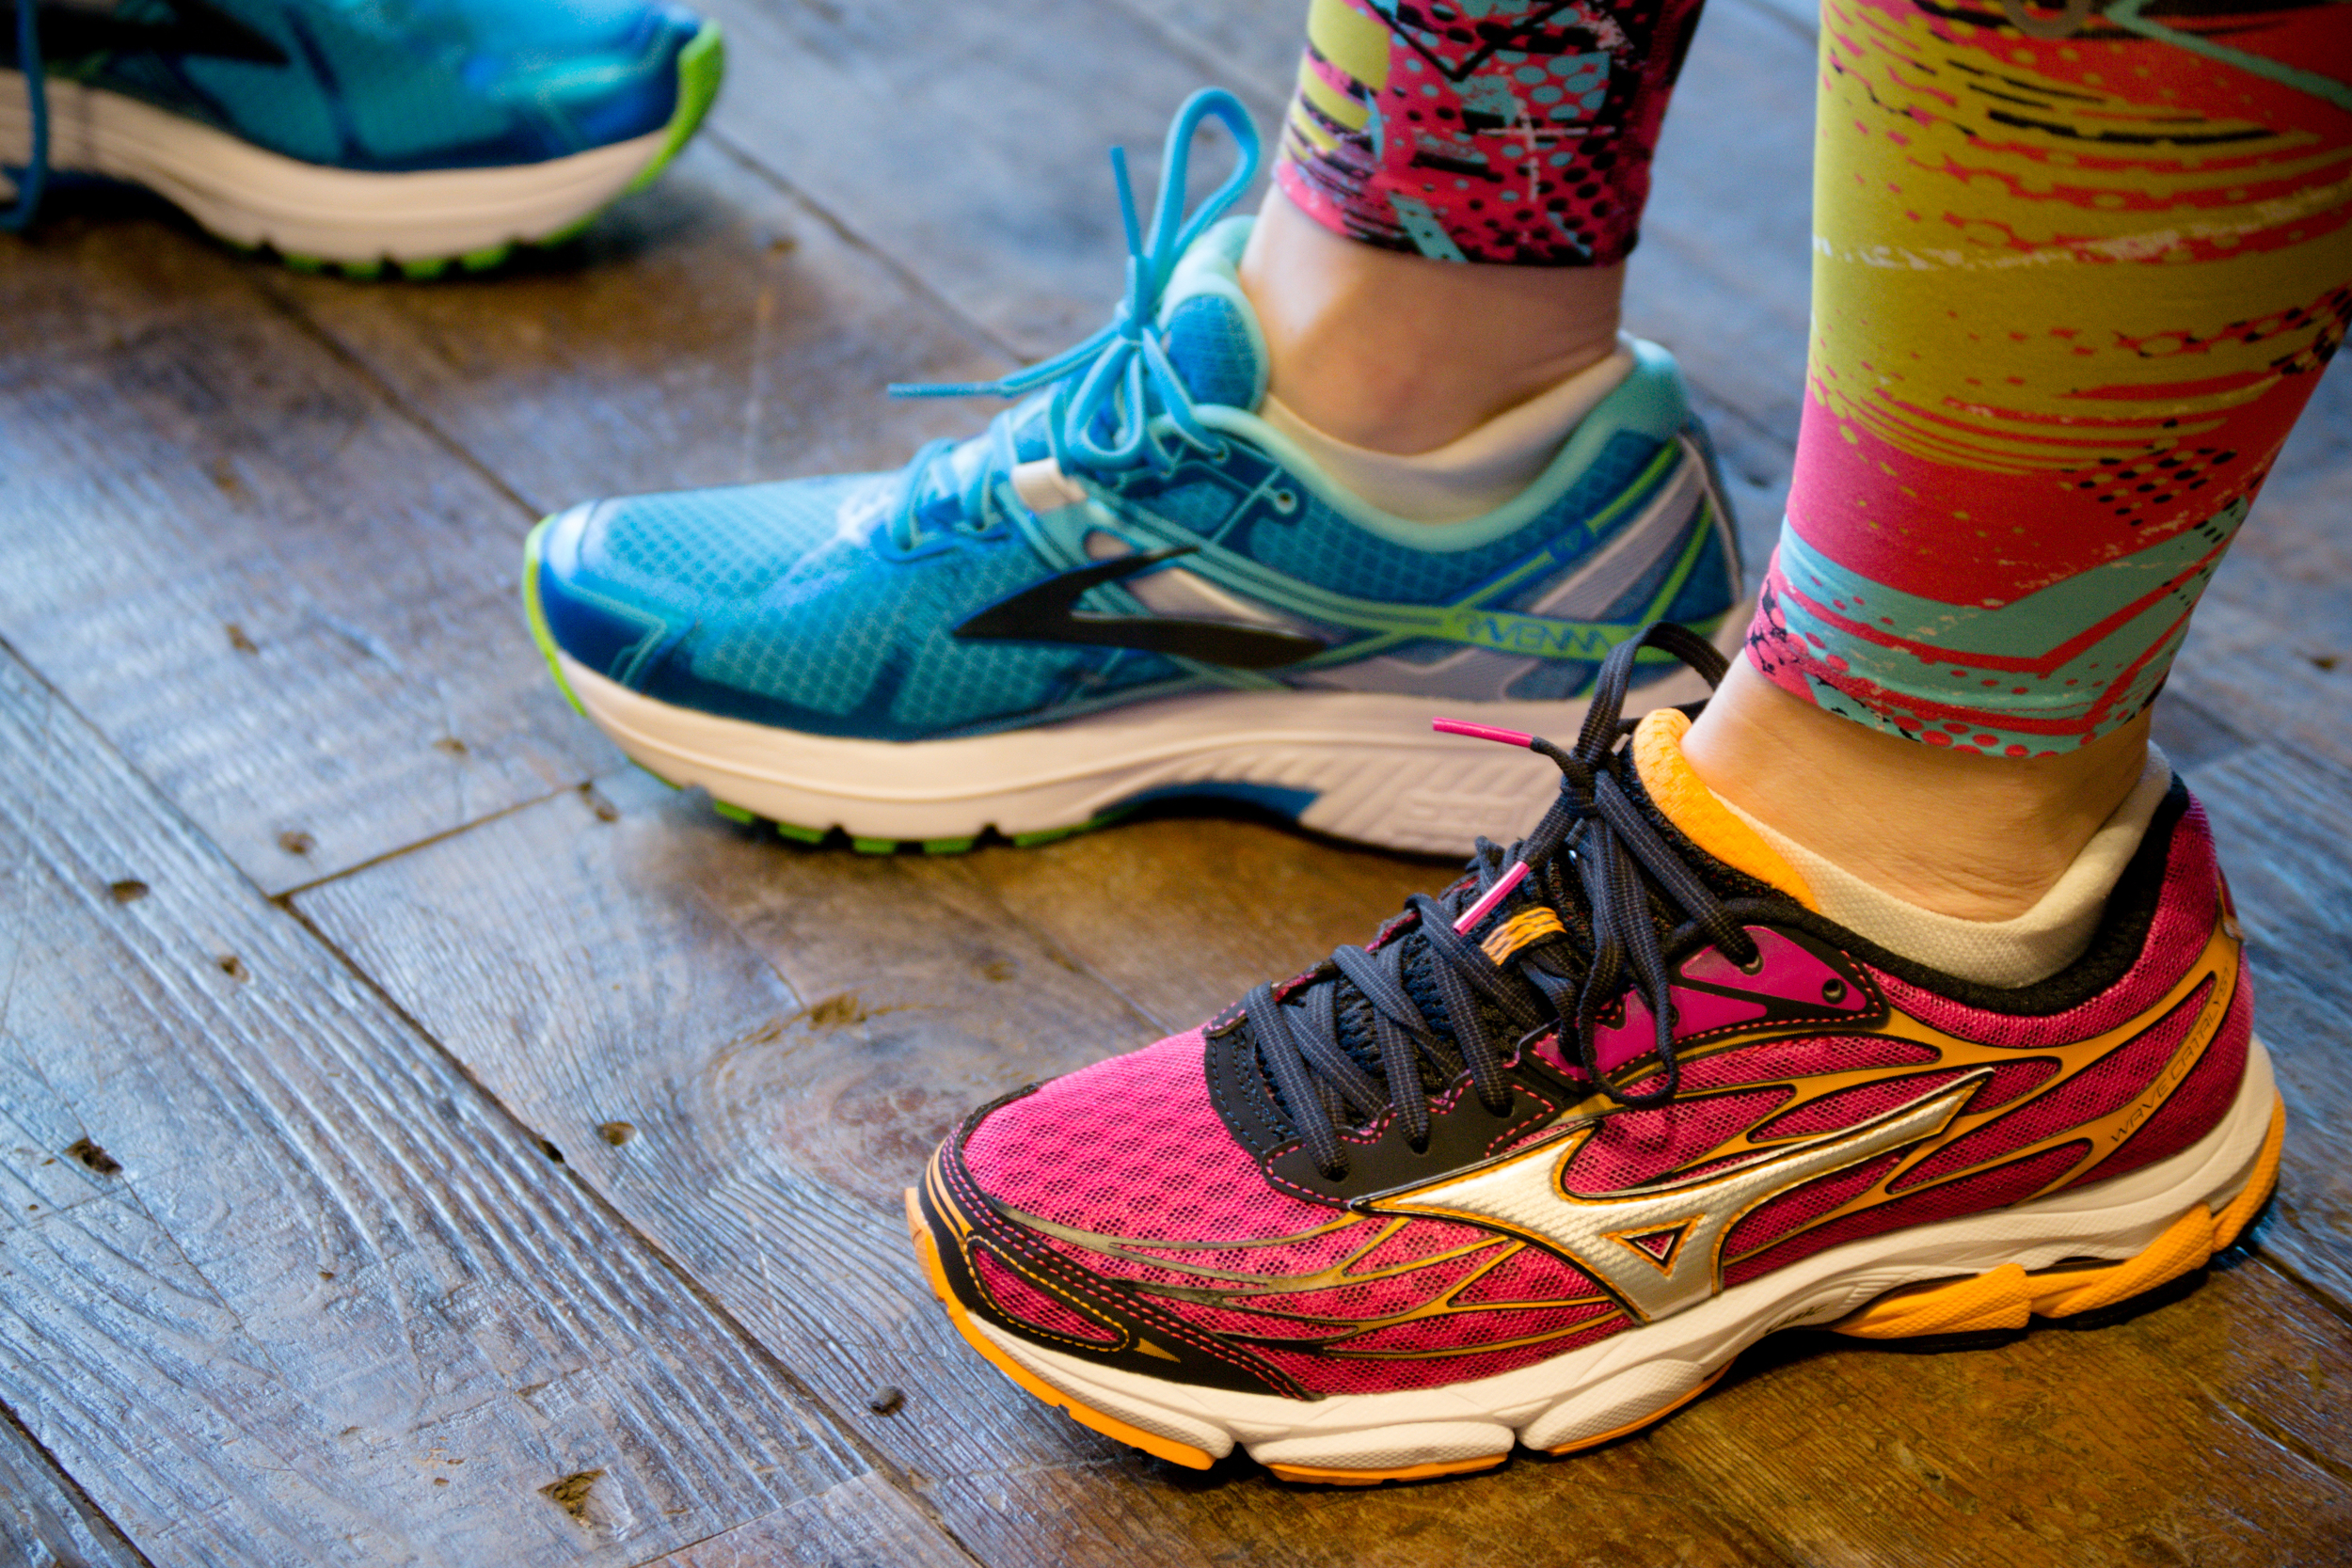 The blue Brooks Ravenna and Pink Mizuno Wave Catalyst battle it out.